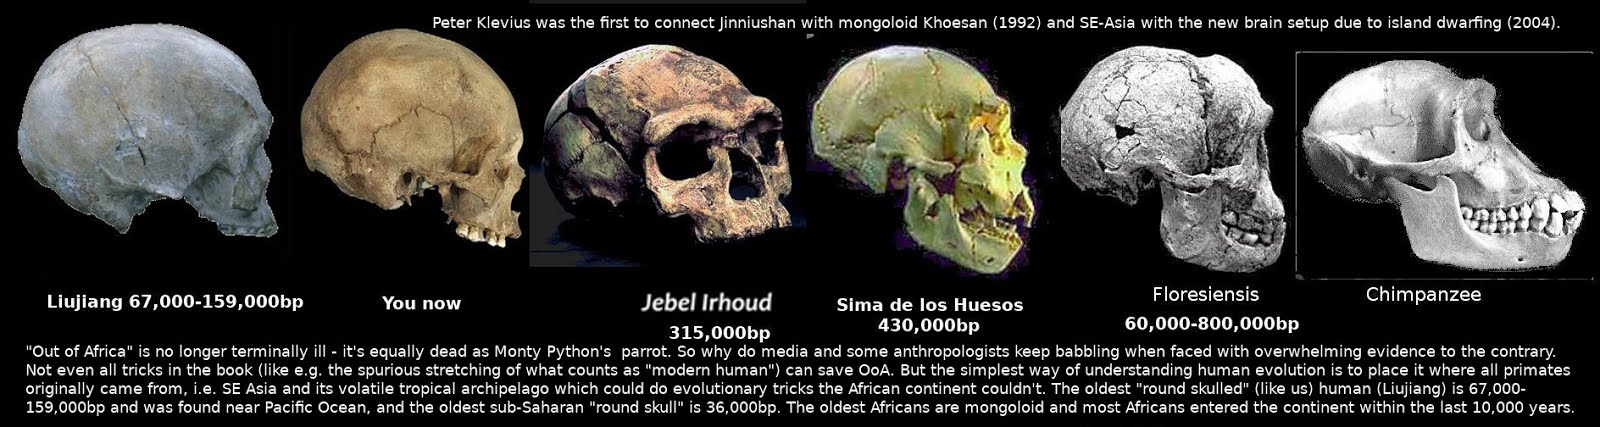 Modern humans evolved in tropical SE Asia and cold Siberia.